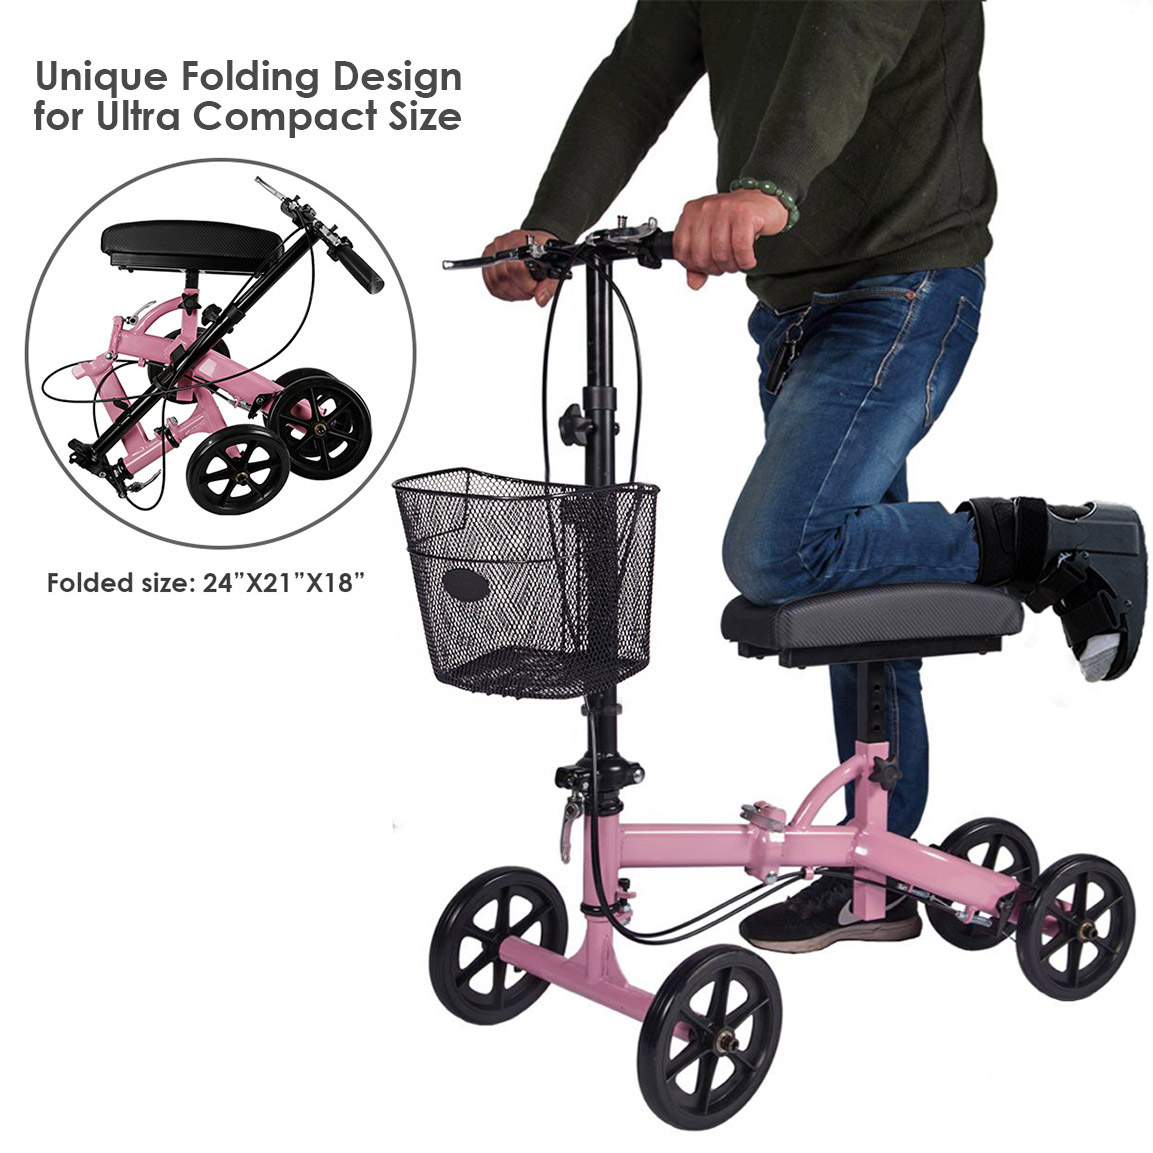 Clevr Foldable Medical Steerable Knee Walker Scooter Roller Crutch Alternative Upgraded Pink